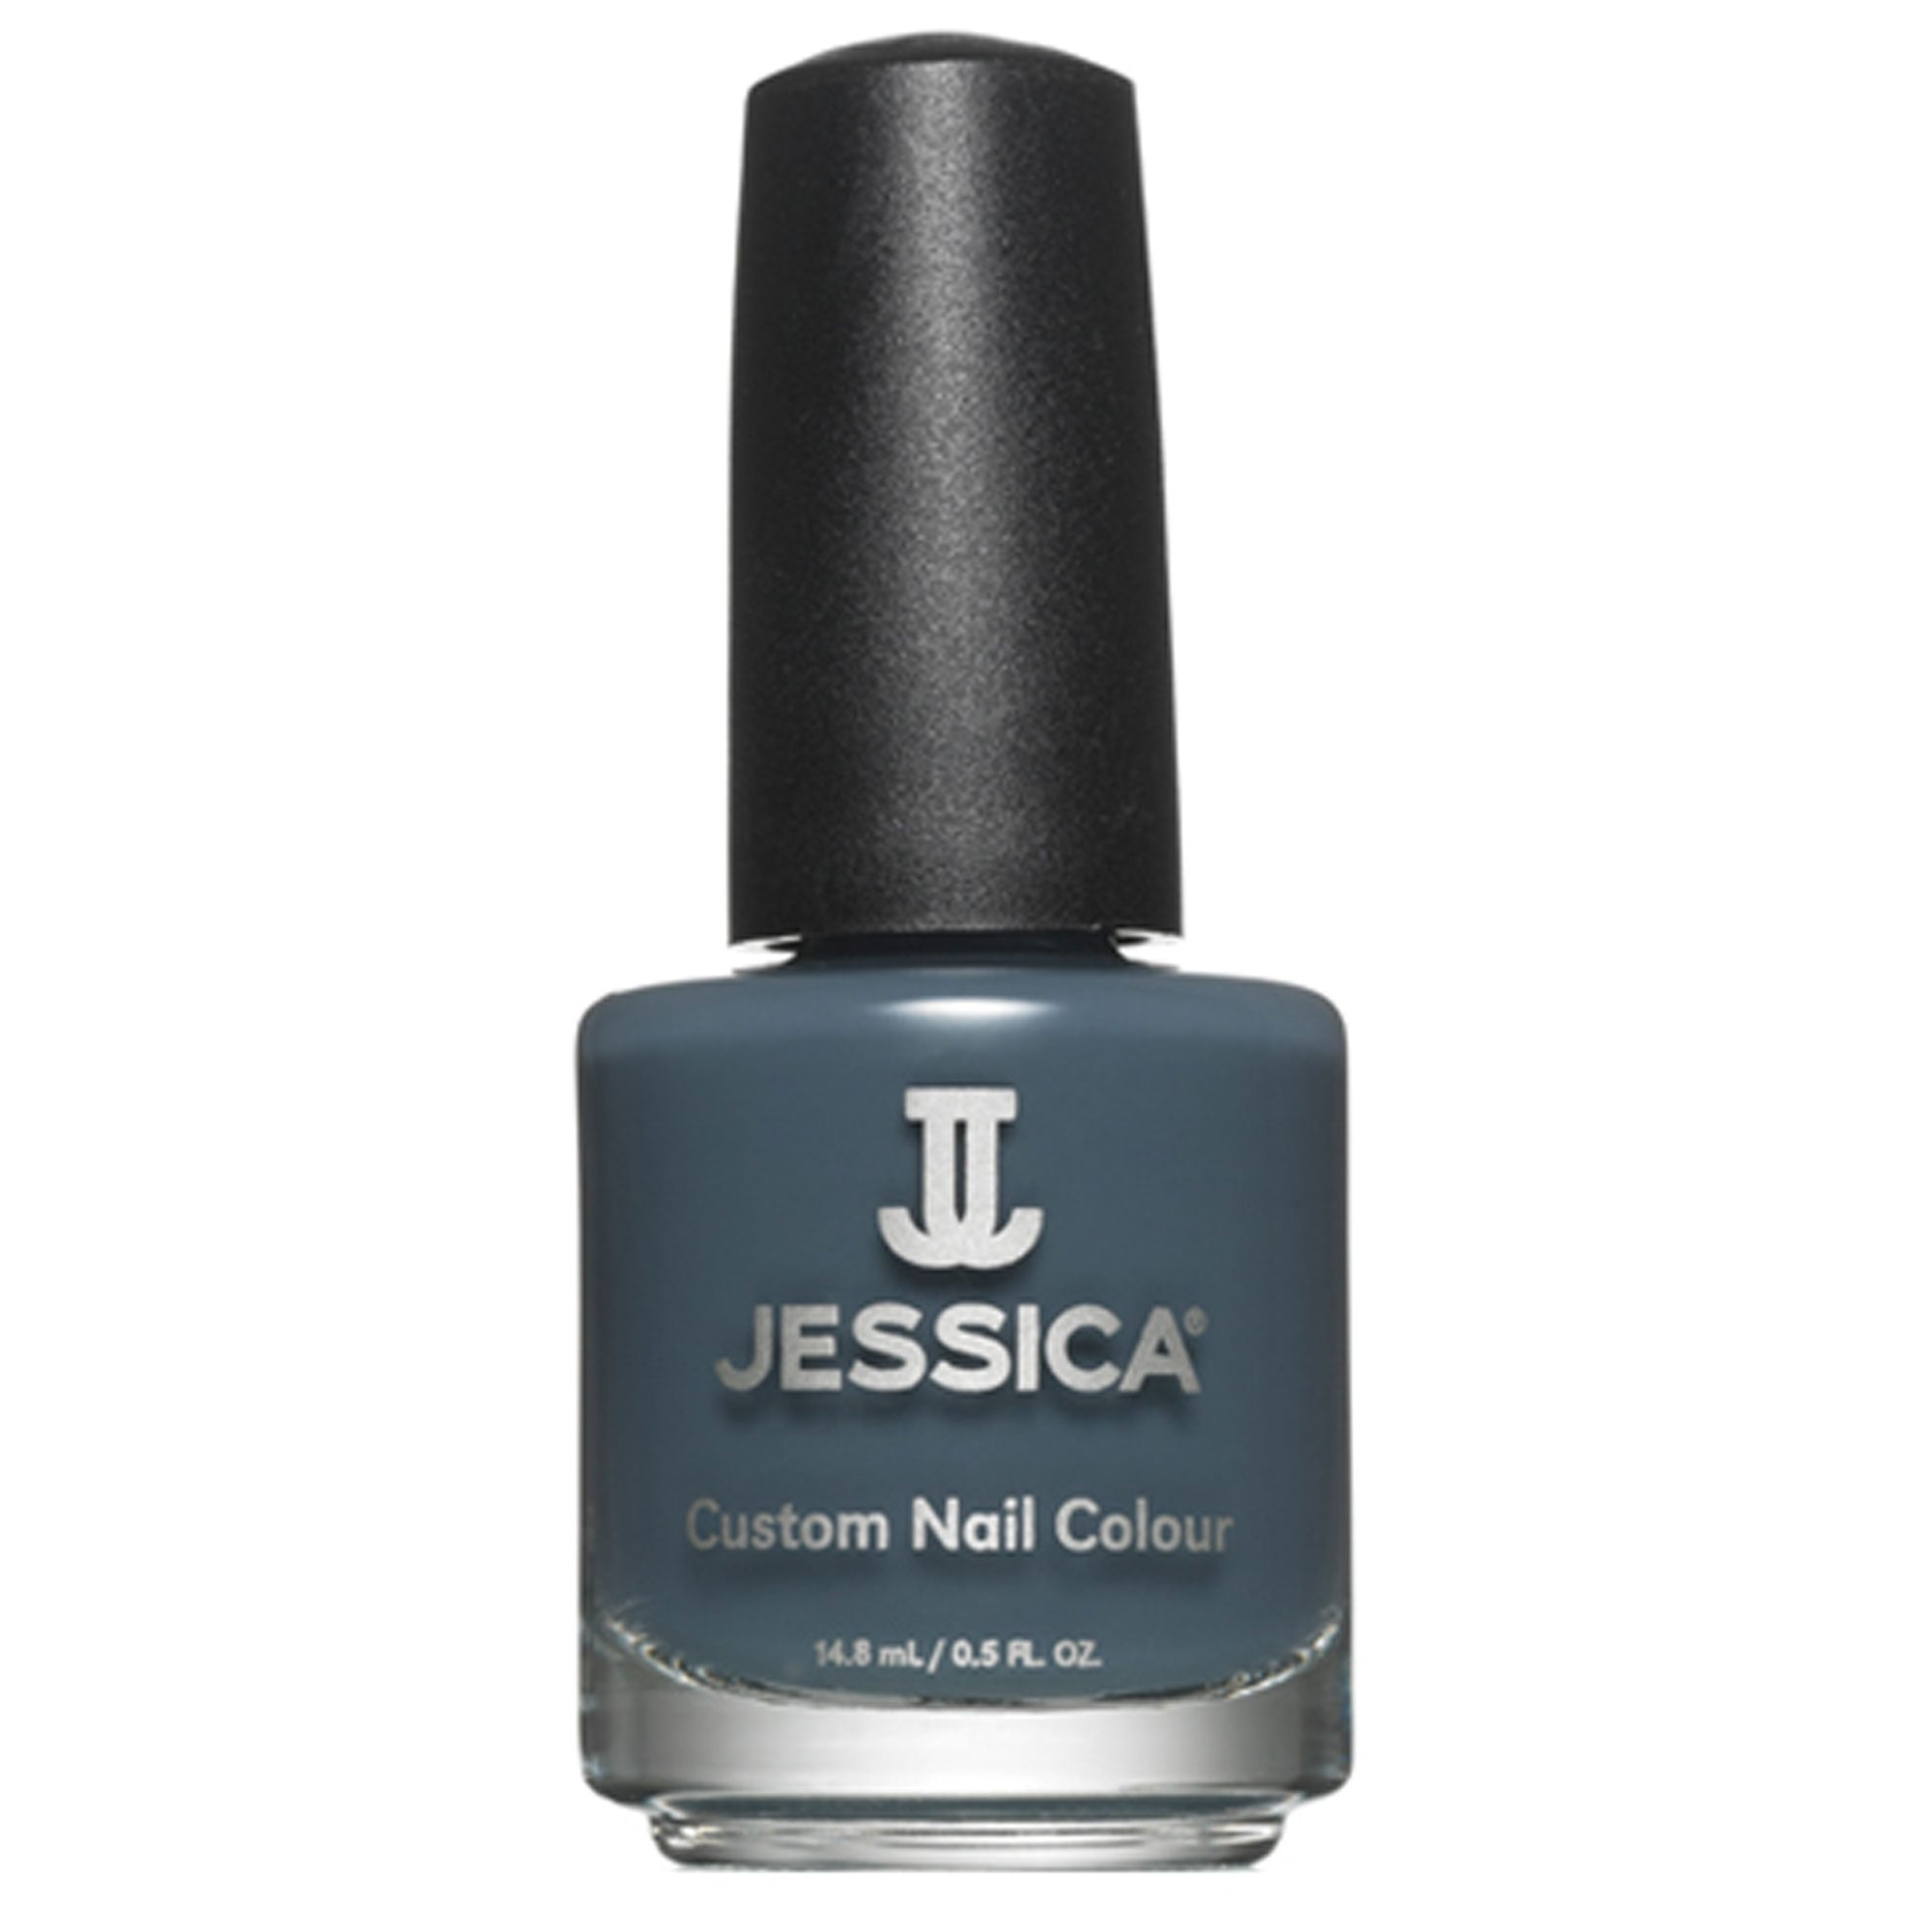 Jessica Autumn In New York Nail Polish Collection - NY State Of Mind